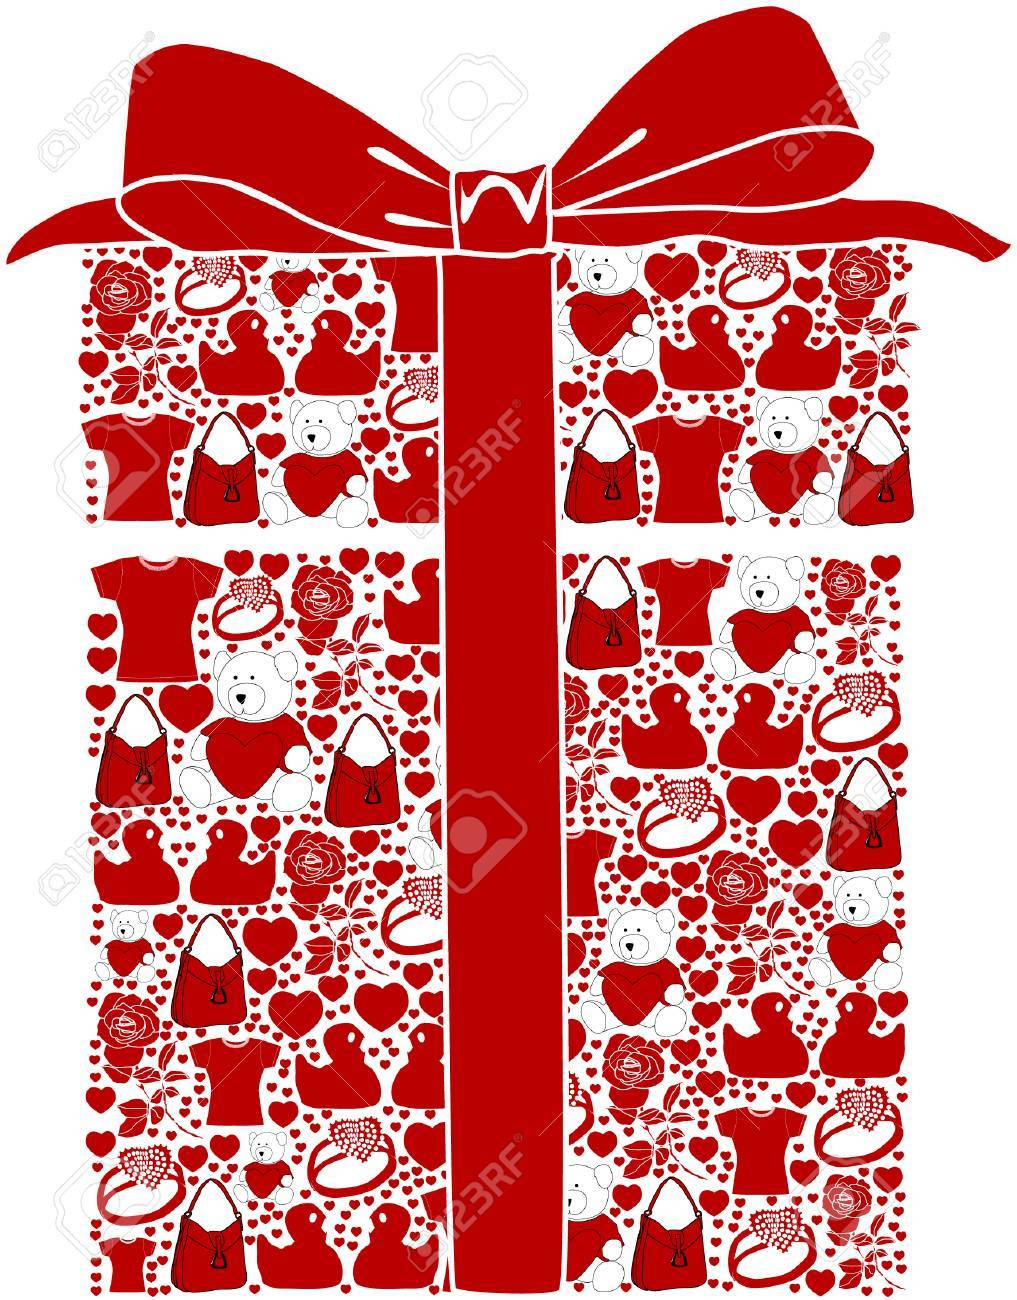 A Stylized Gift Box With Various Valentine Gift Ideas Royalty Free ...